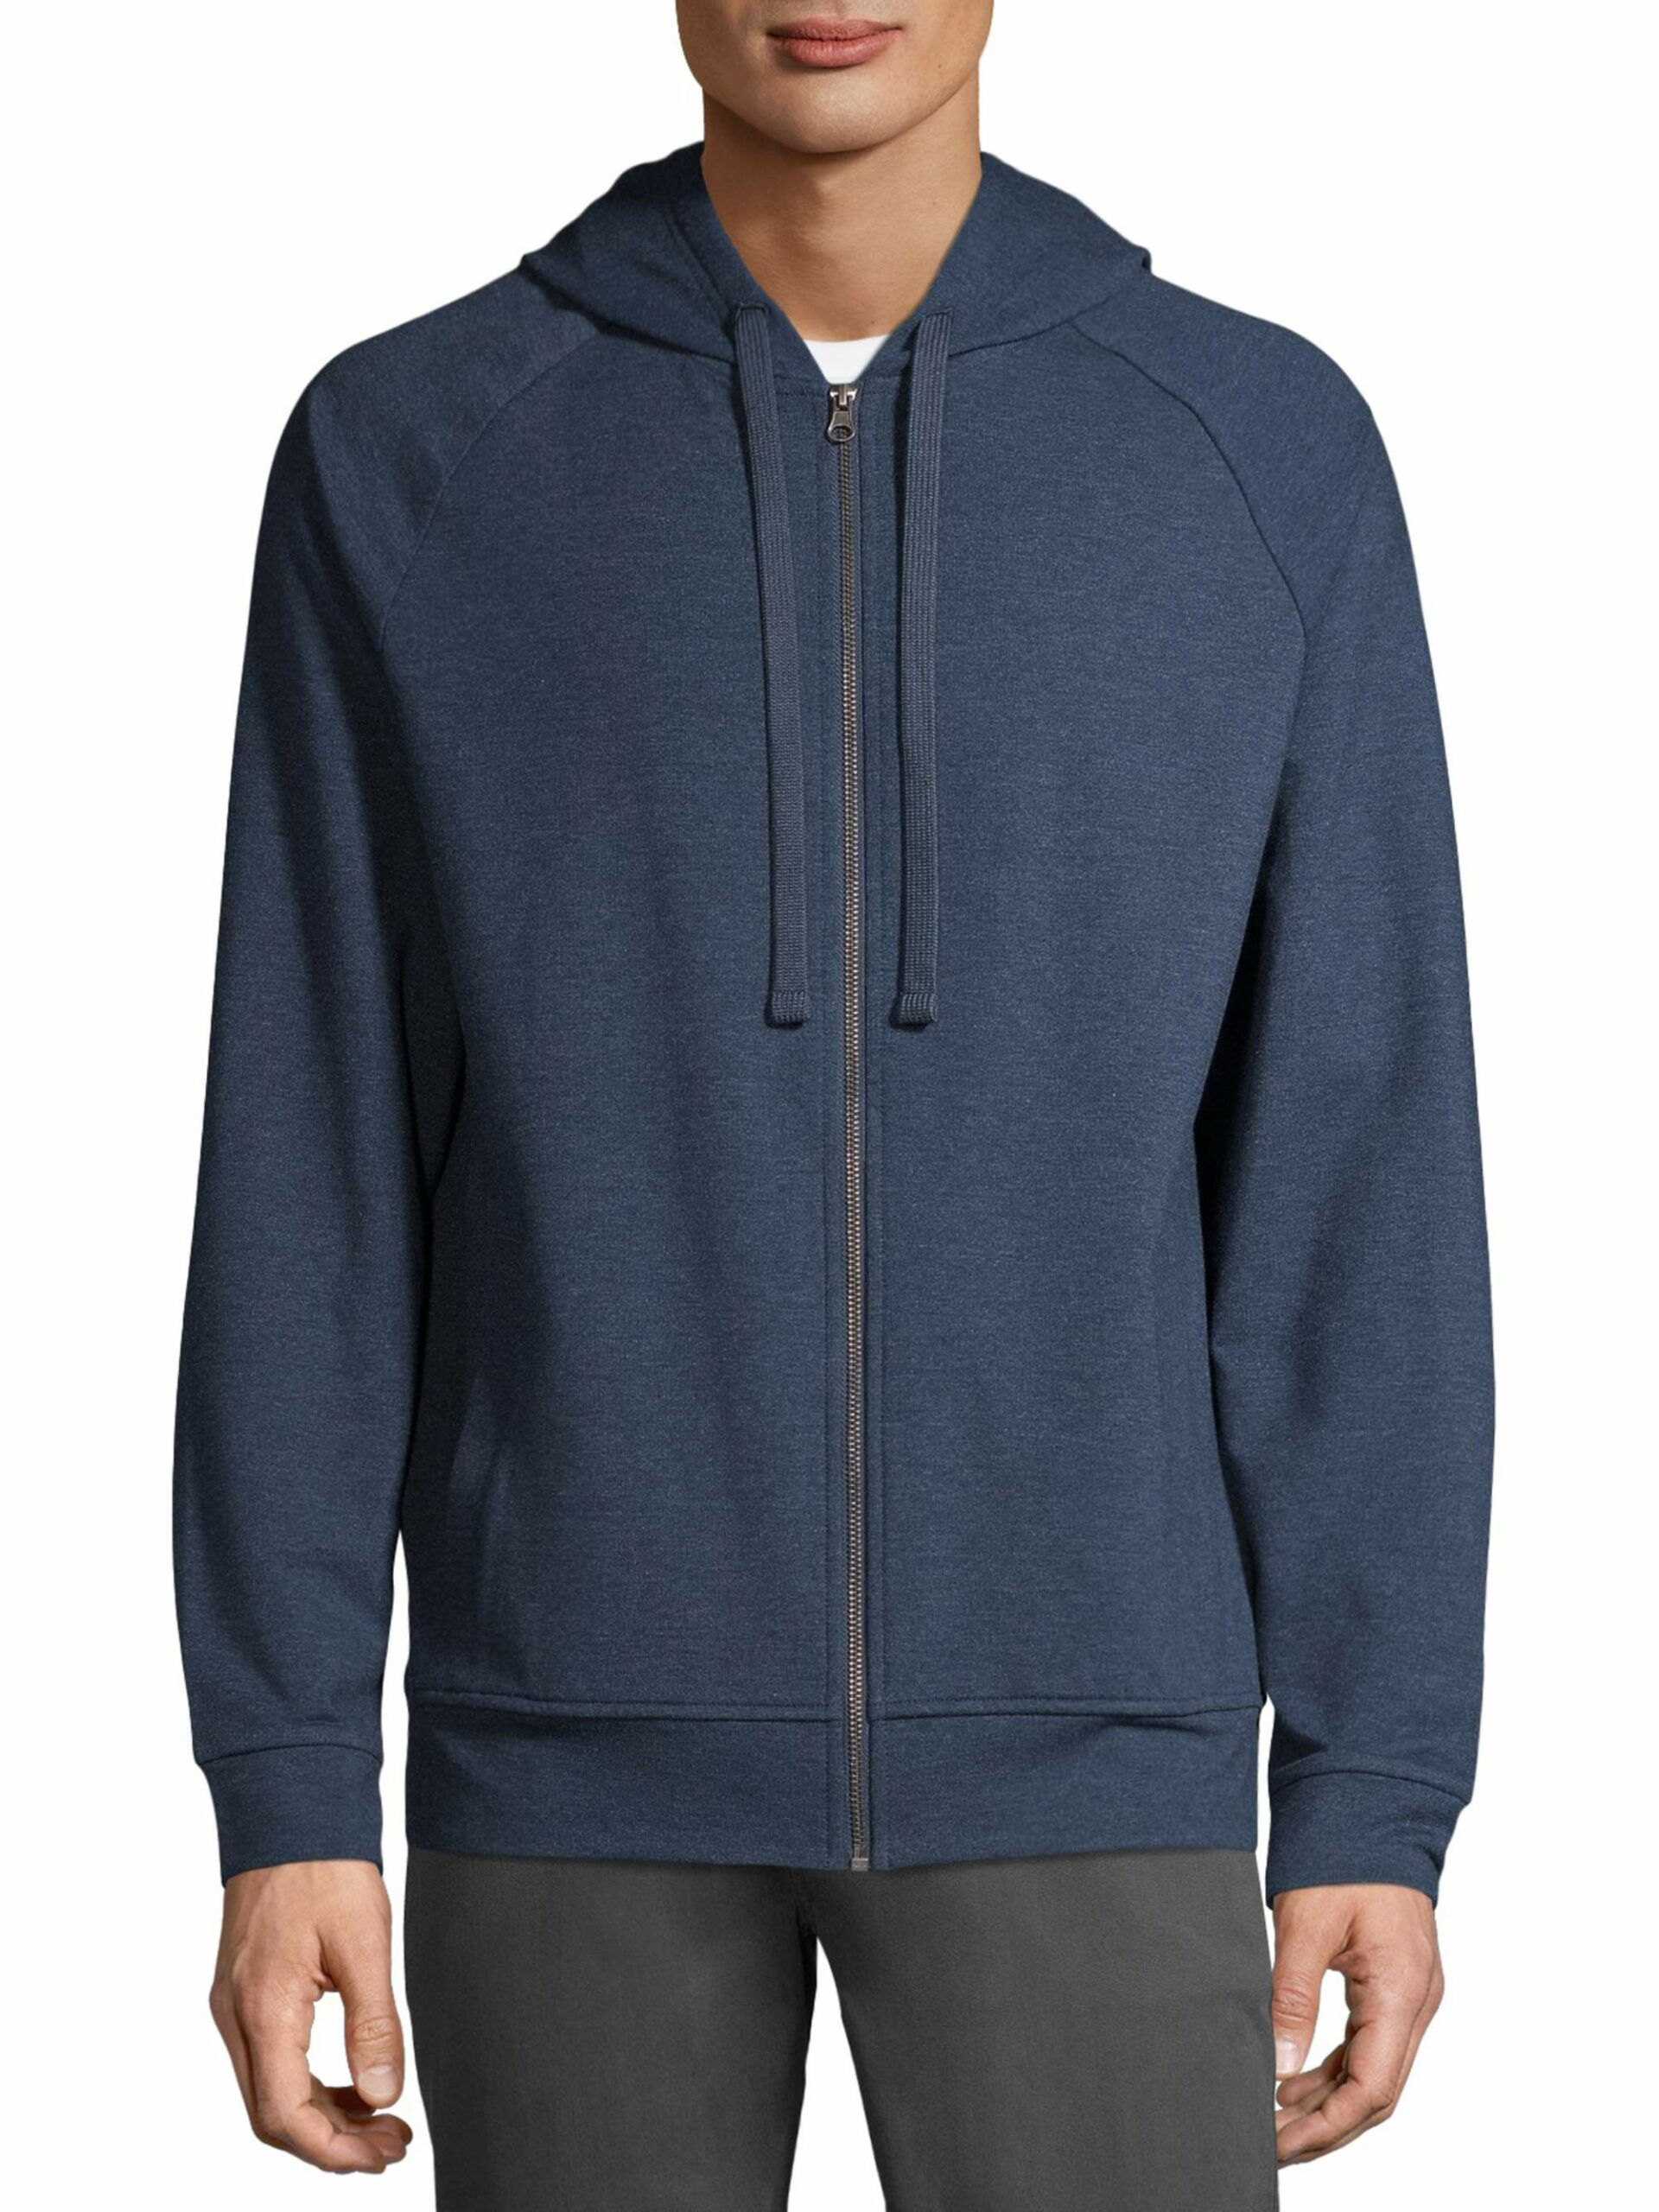 George Men's and Big Men's Fashion Full Zip Hoodie Blue Cove Heather, up to Size S/CH 34-36